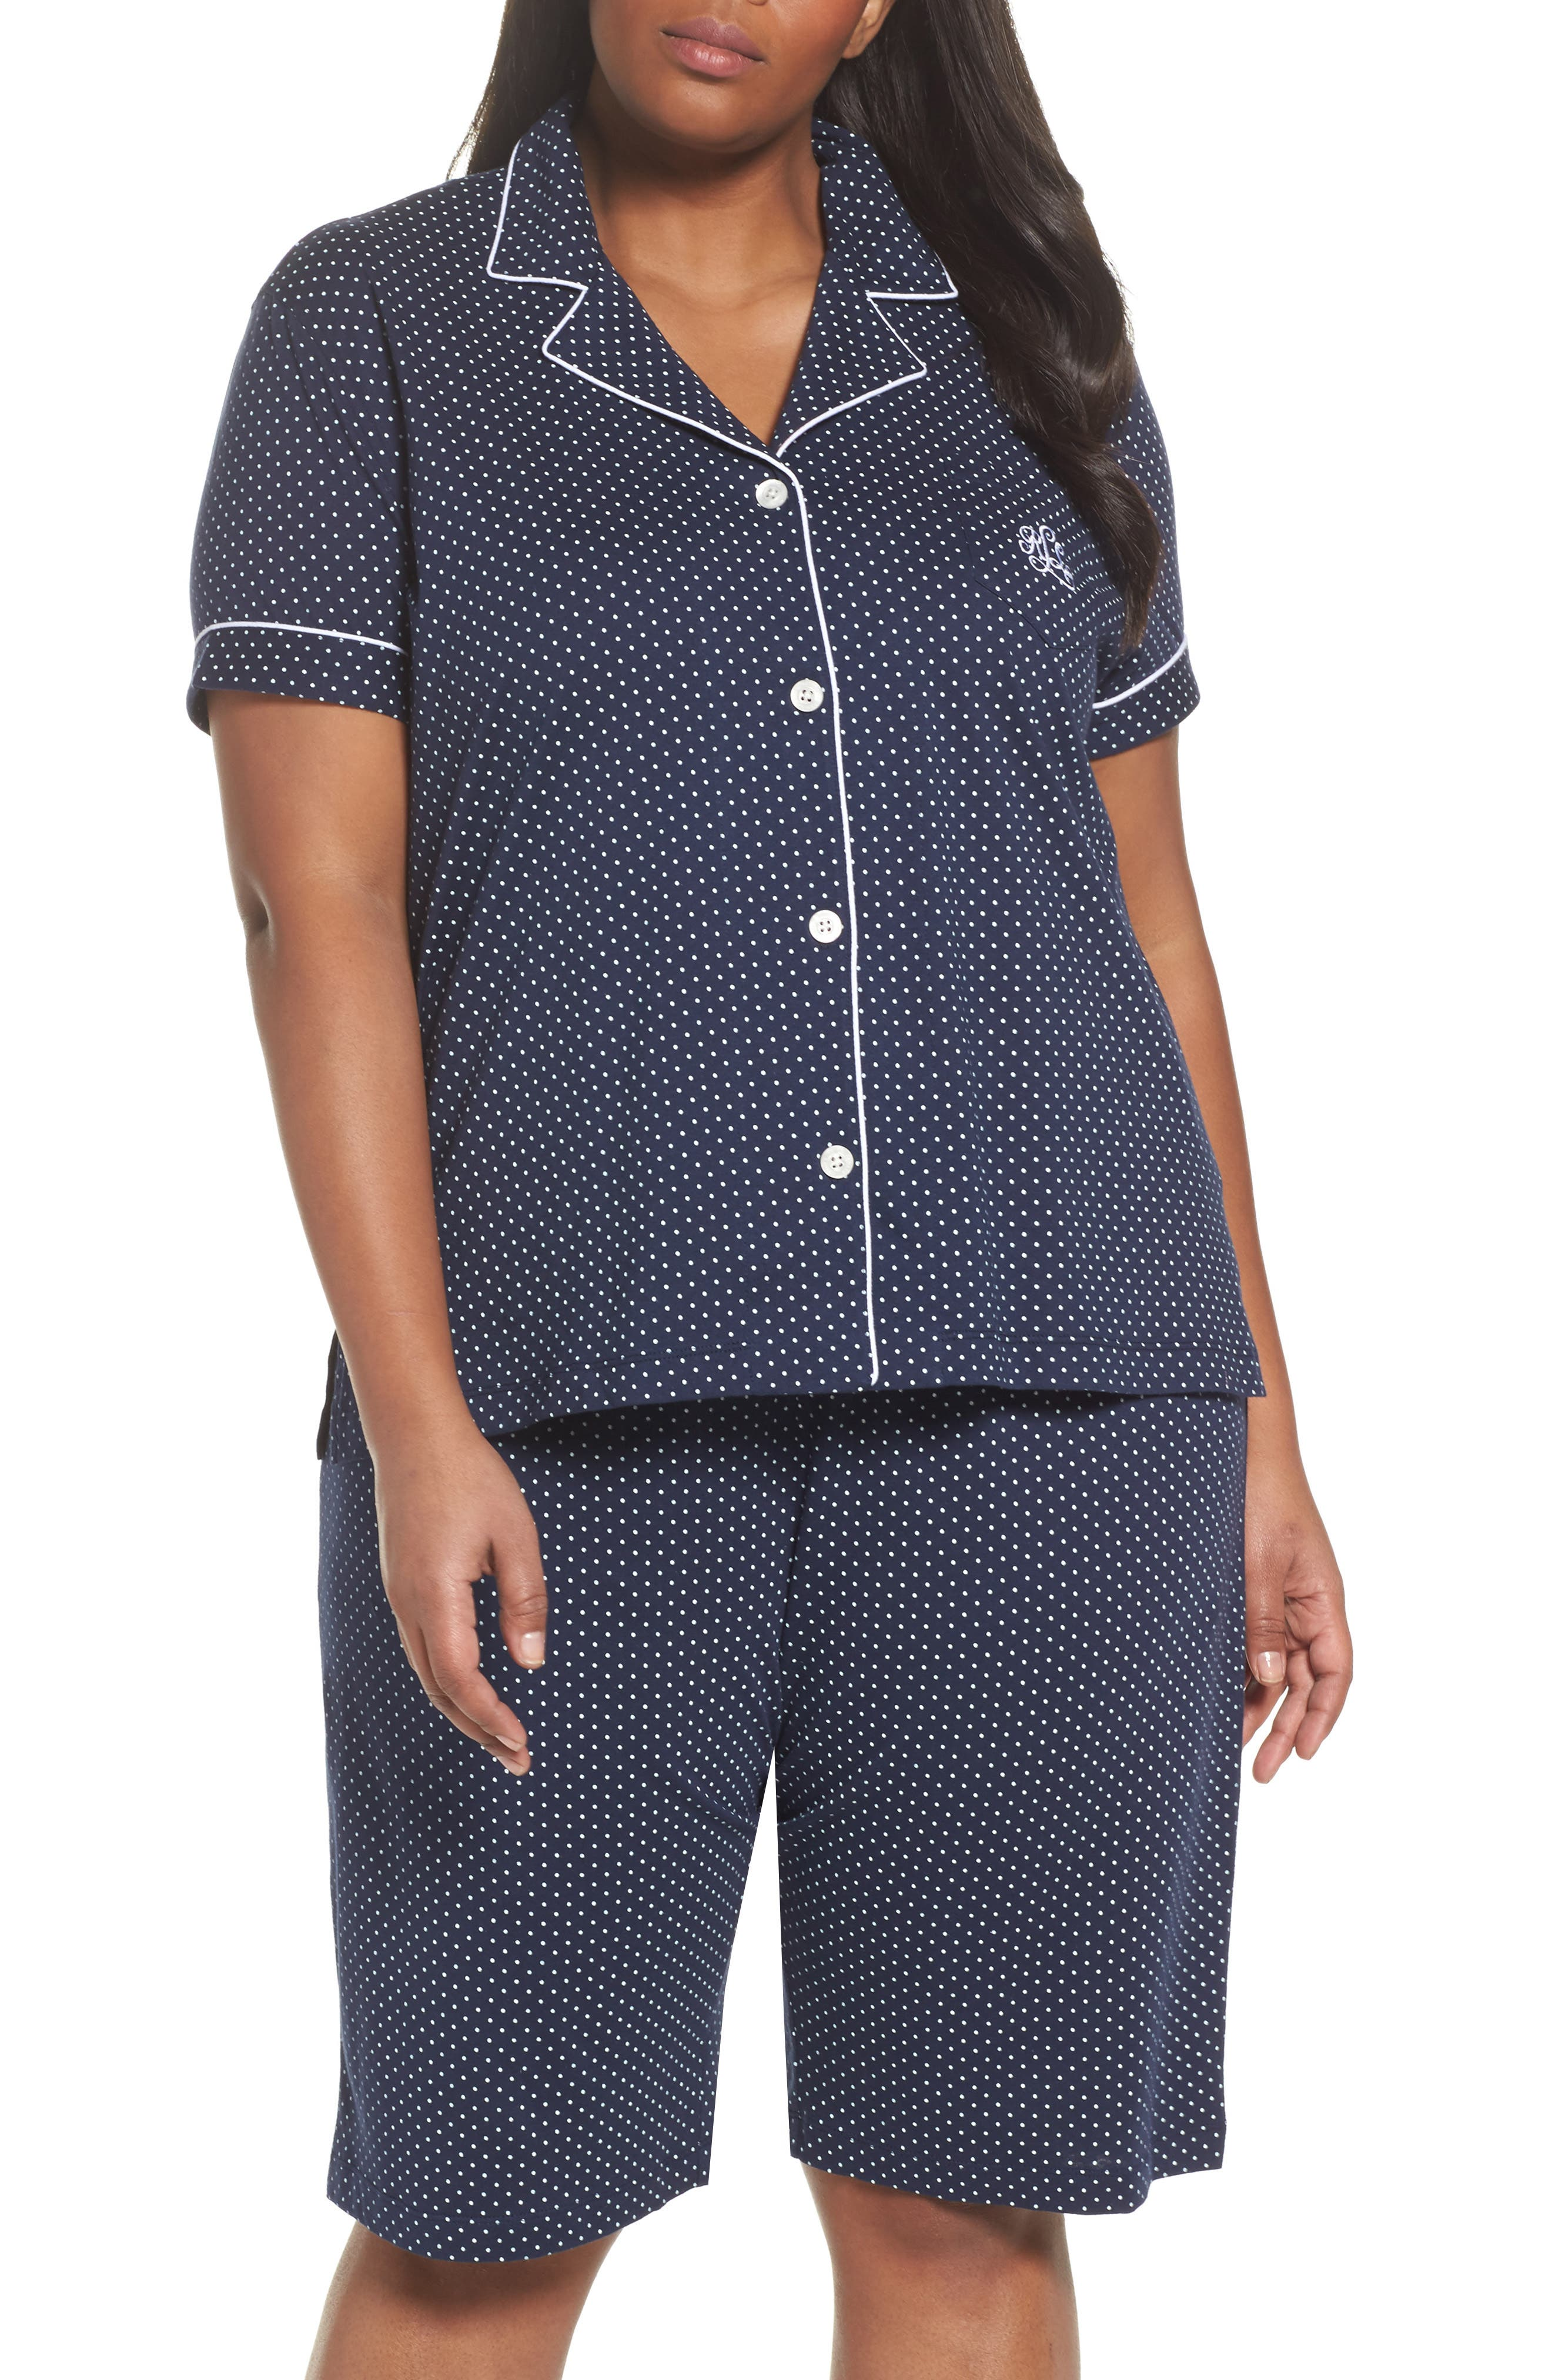 LAUREN RALPH LAUREN Bermuda Pajamas, Main, color, NAVY DOT